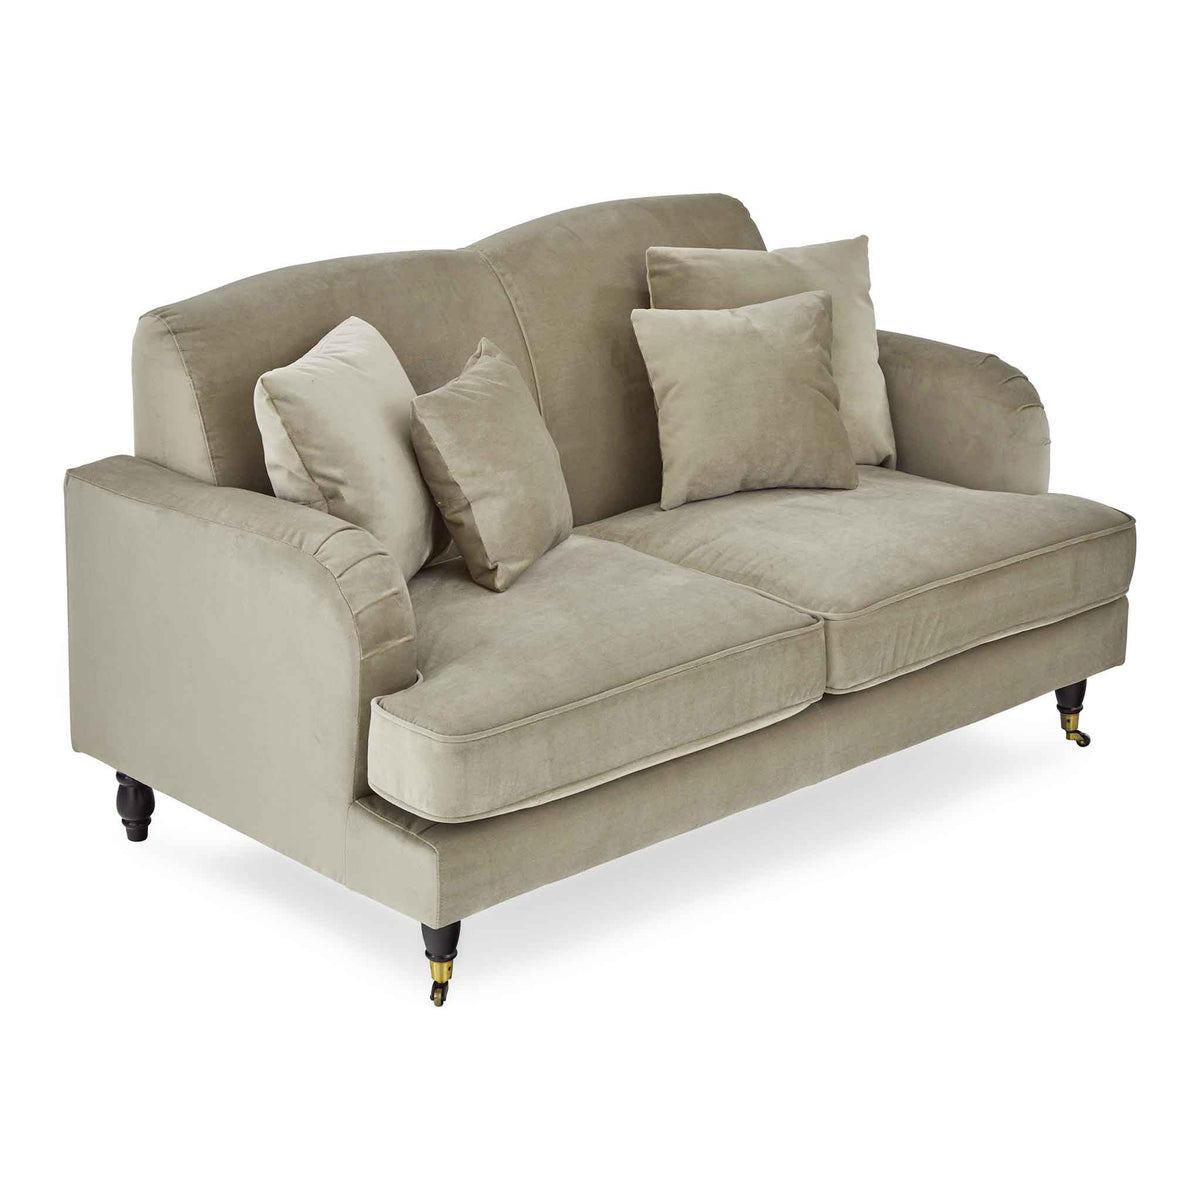 Piper Putty Velvet 2 Seater Couch from Roseland Furniture